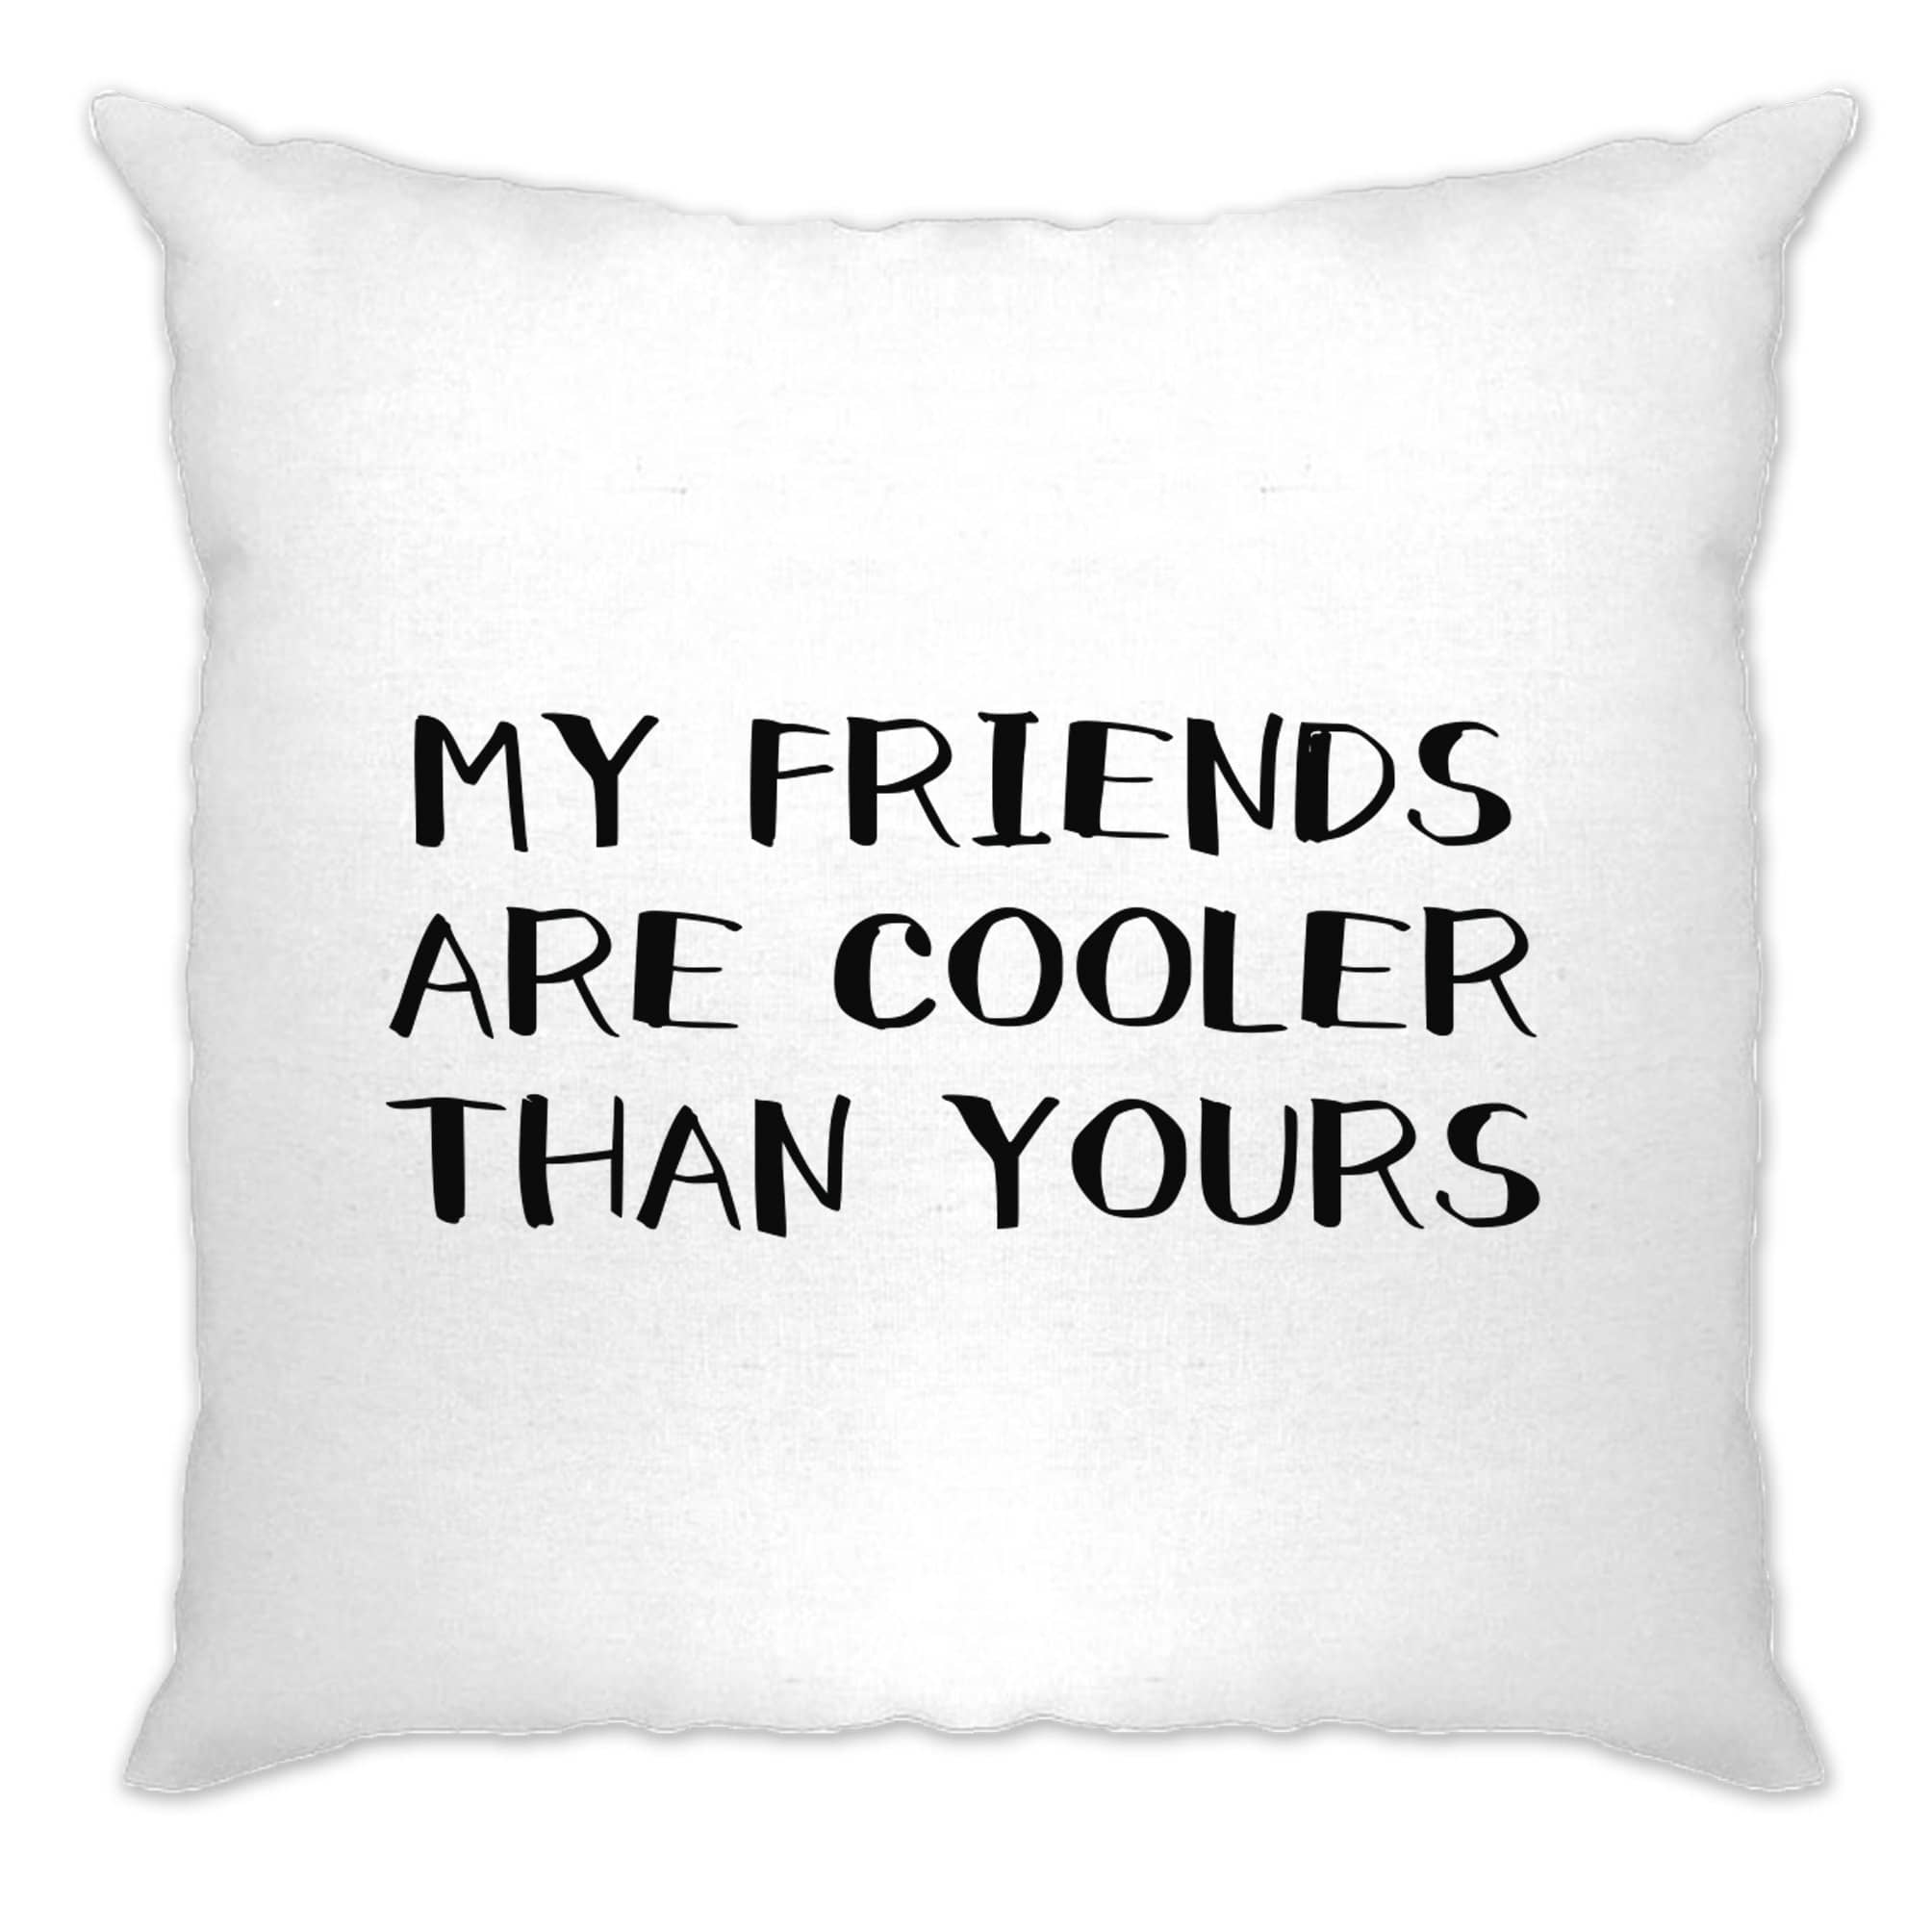 Novelty Cushion Cover My Friends Are Cooler Than Yours Joke